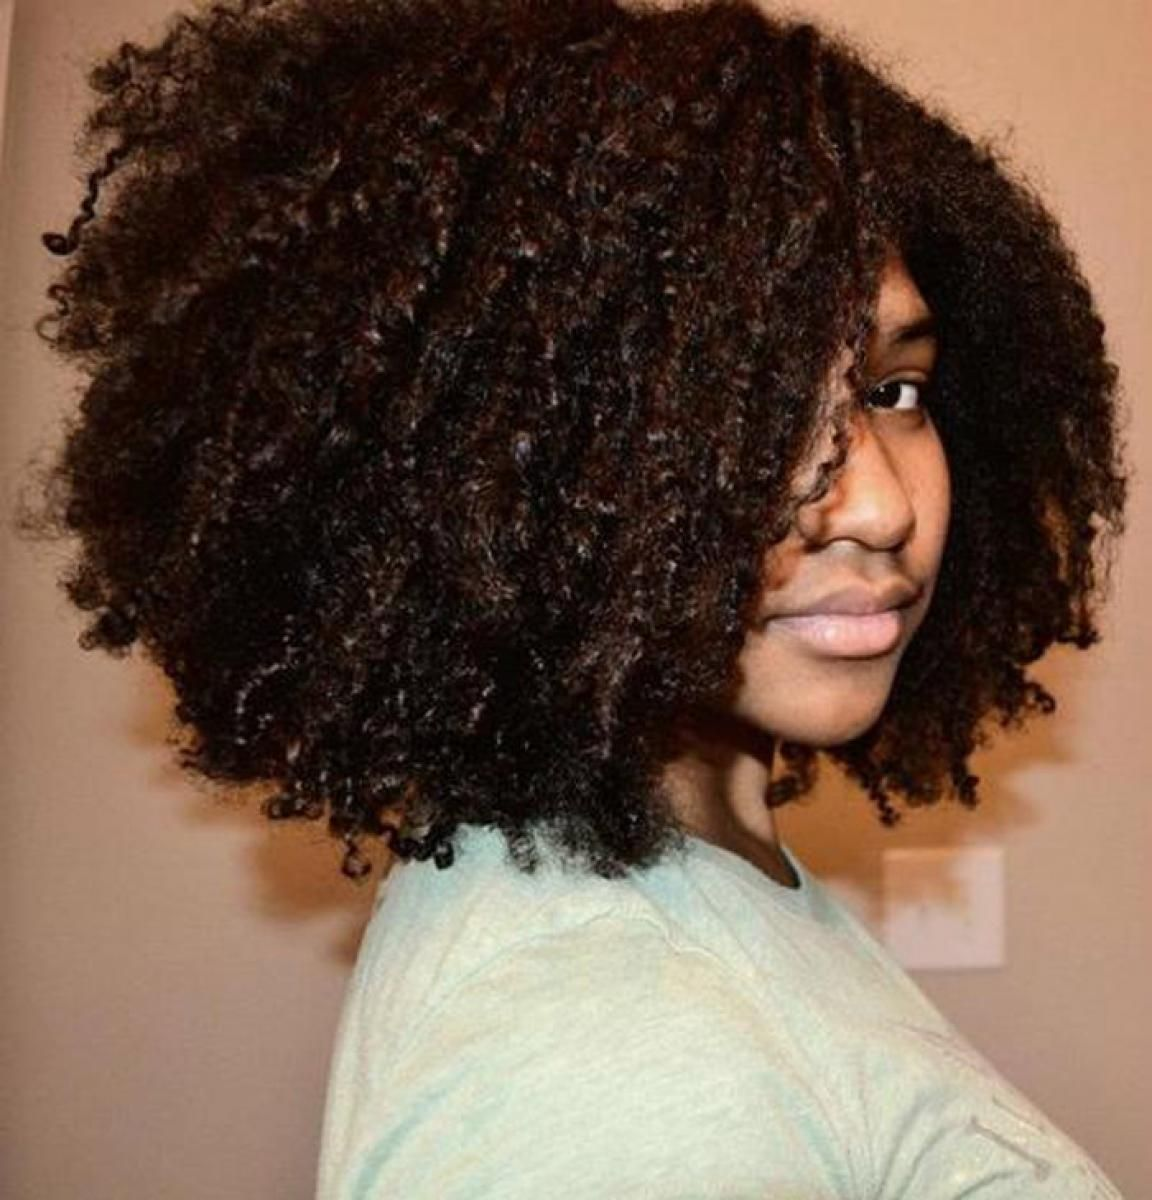 Pictures Of Black Natural Curly Hairstyles For Medium Length Hair 4a Natural Hair Curly Hair Styles Naturally Natural Hair Styles